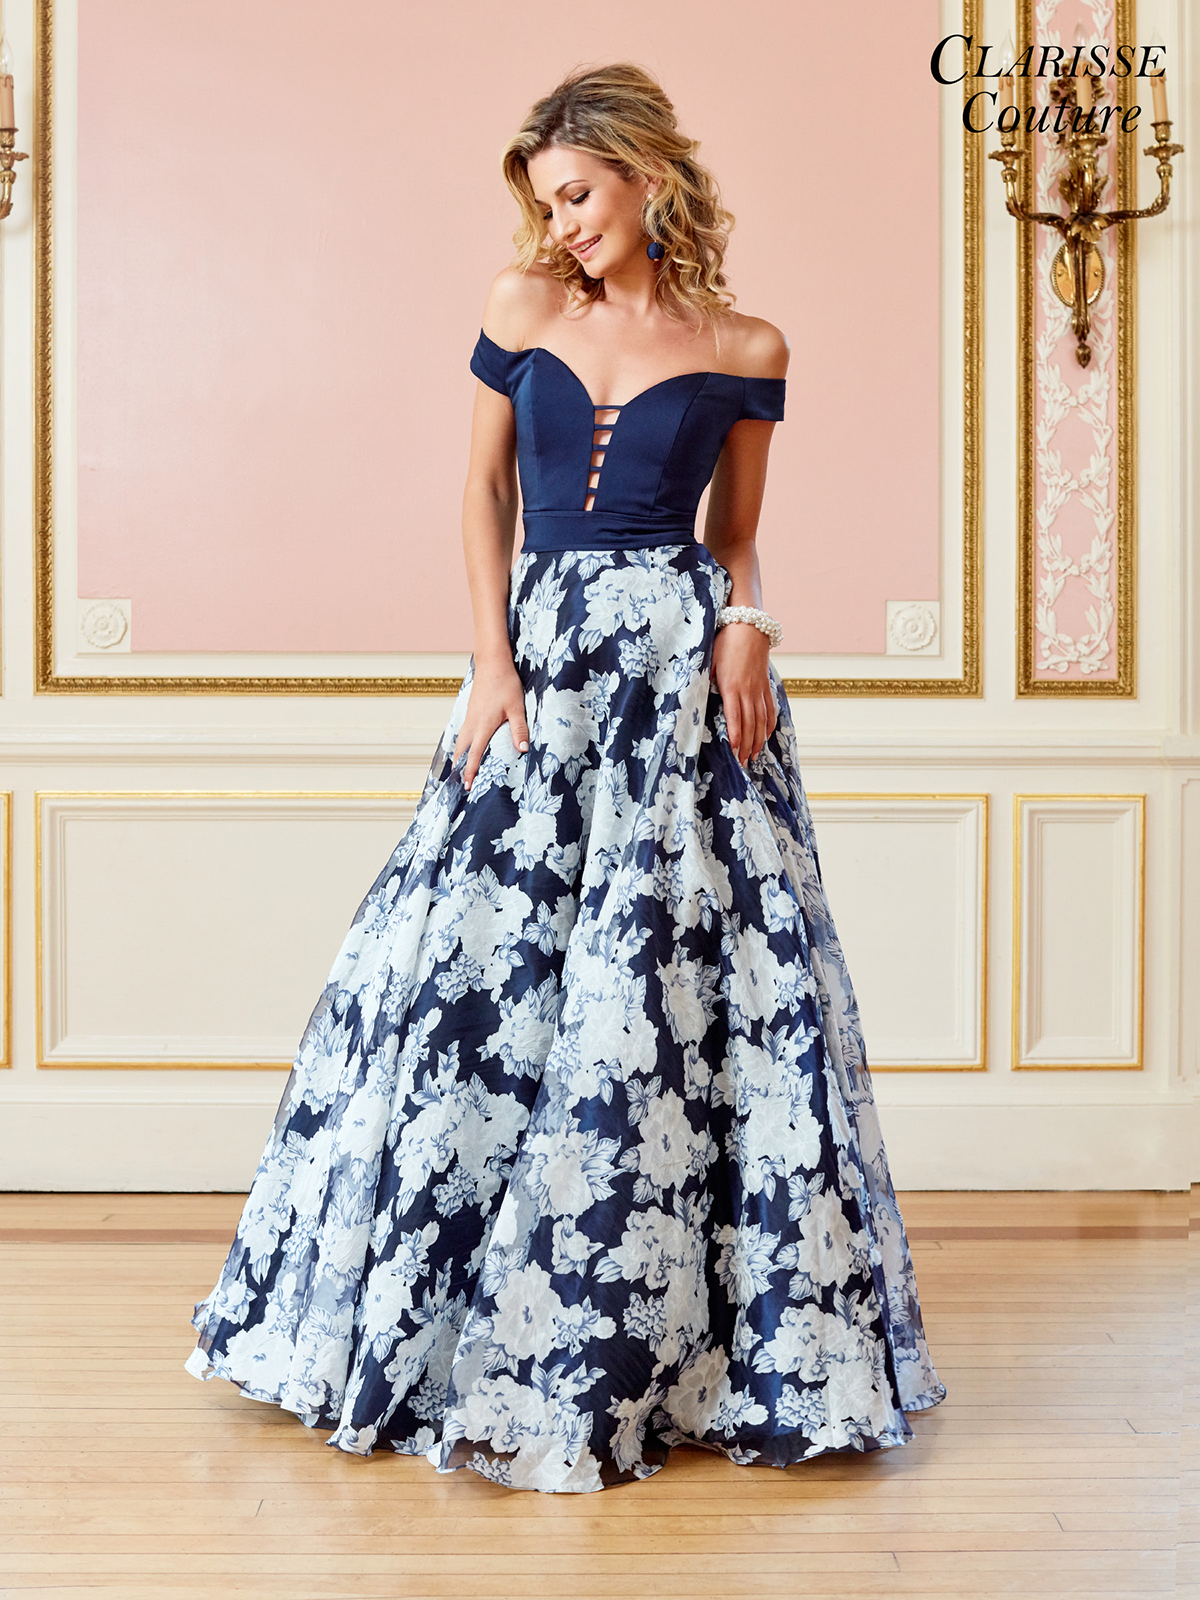 2018 Prom Dress Clarisse 4966 | Promgirl.net